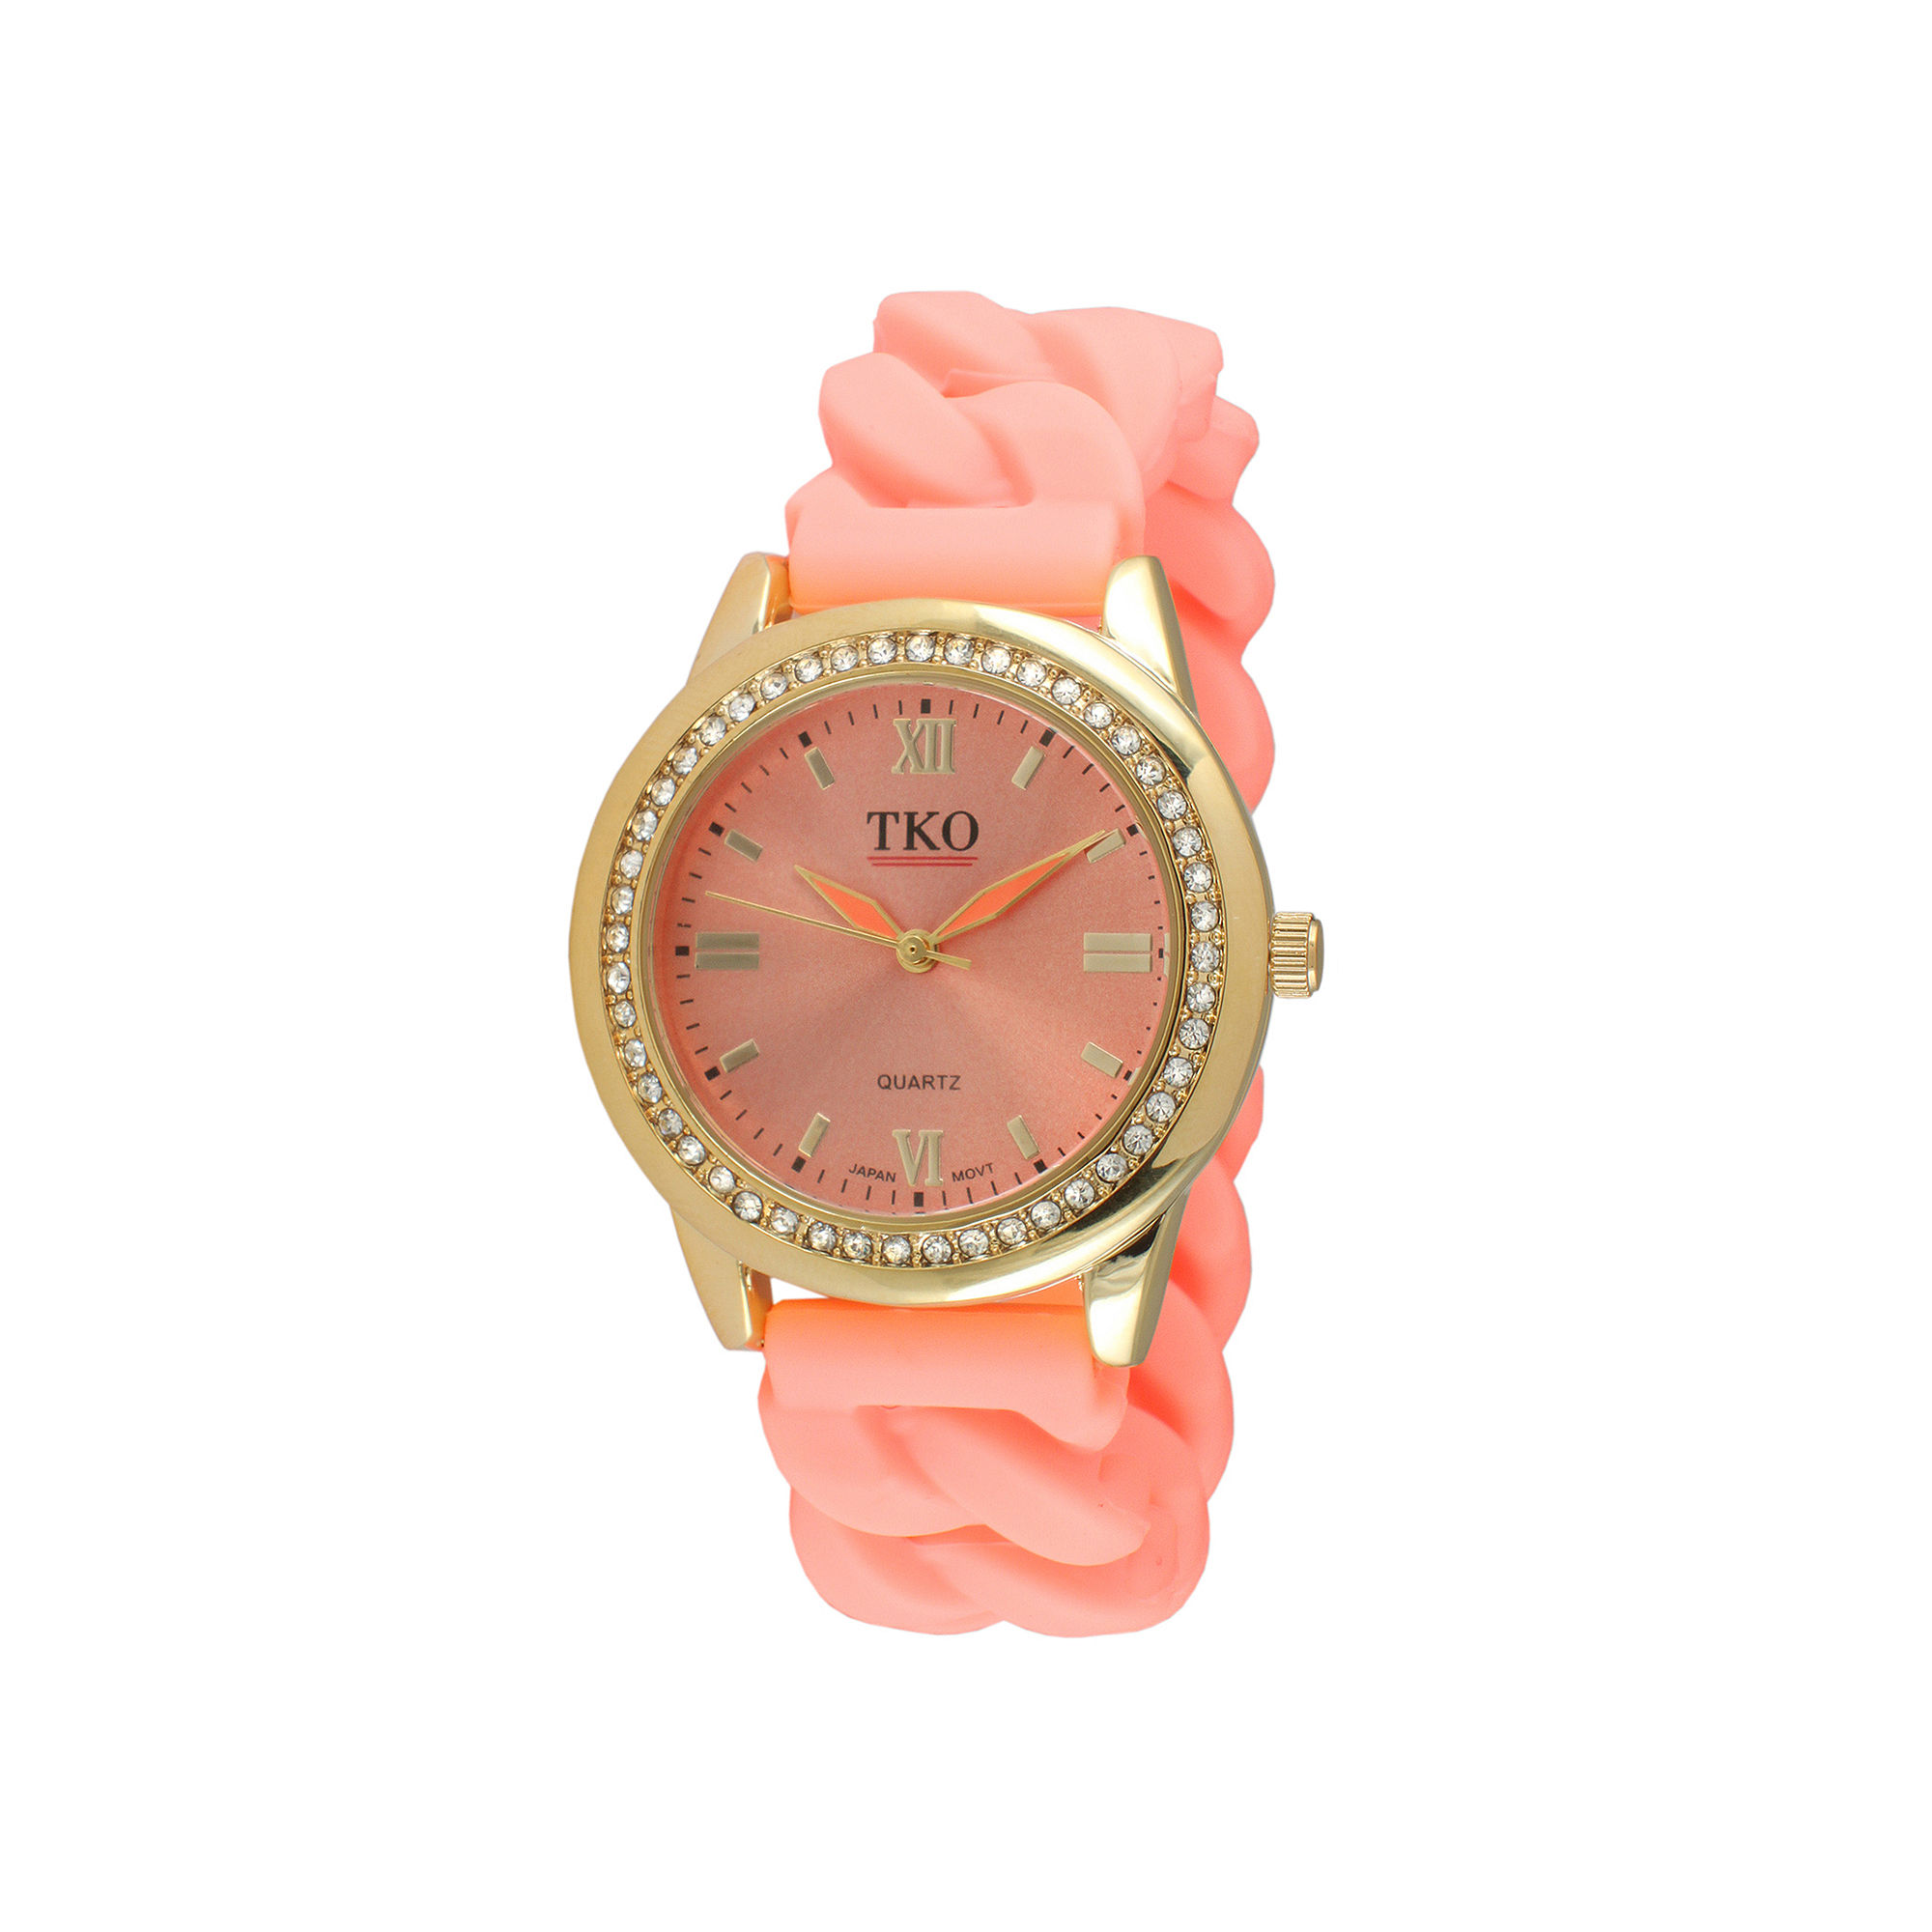 TKO ORLOGI Womens Crystal-Accent Chain-Link Light Pink Silicone Strap Stretch Watch